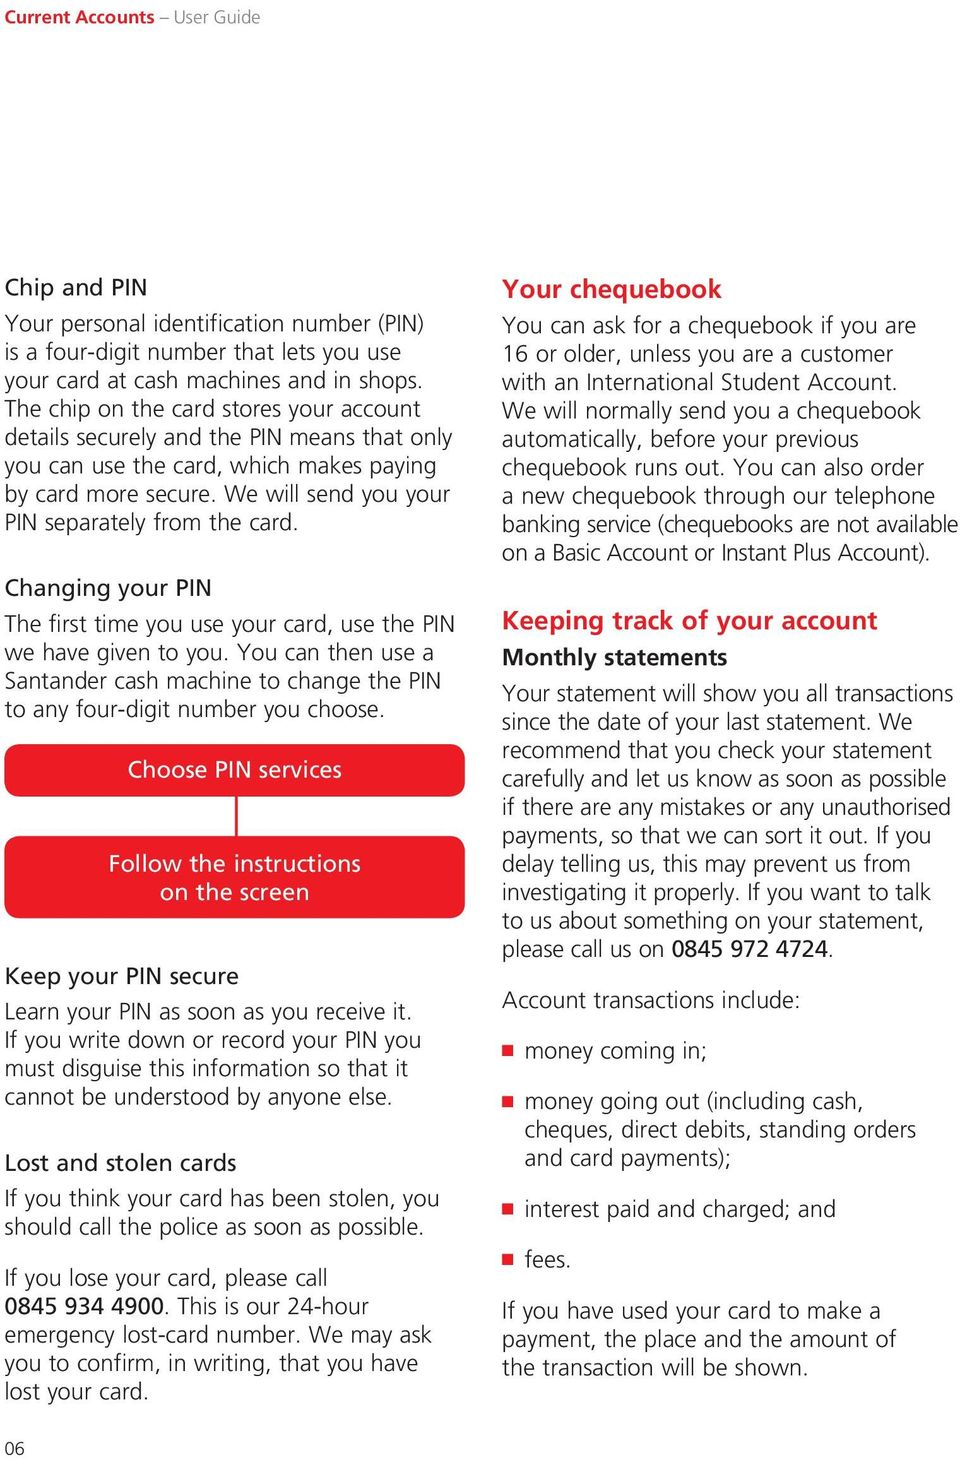 Changing your PIN The first time you use your card, use the PIN we have given to you. You can then use a Santander cash machine to change the PIN to any four-digit number you choose.